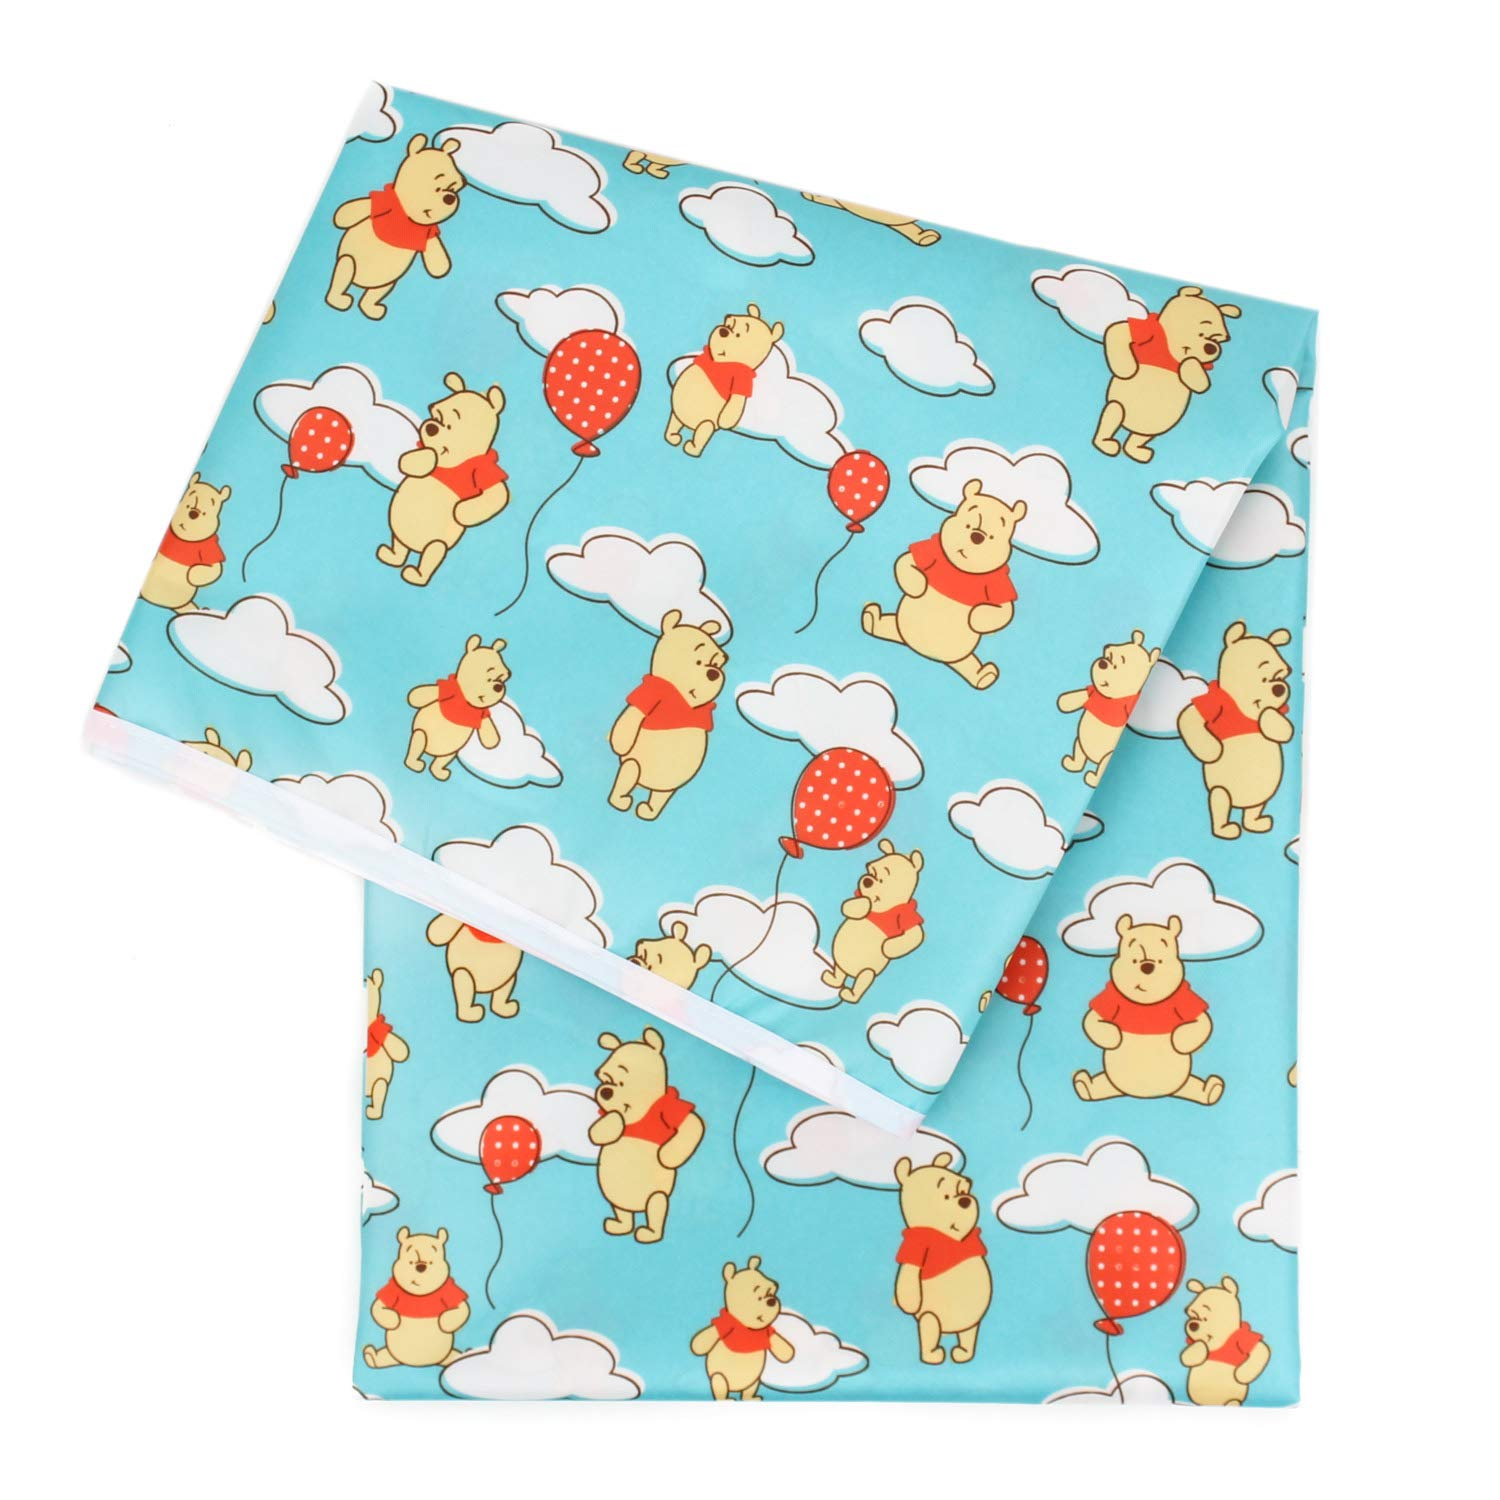 Bumkins Disney Winnie The Pooh Splat Mat, Waterproof, Washable for Floor or Table, Under Highchairs, Art, Crafts, Playtime - 42x42